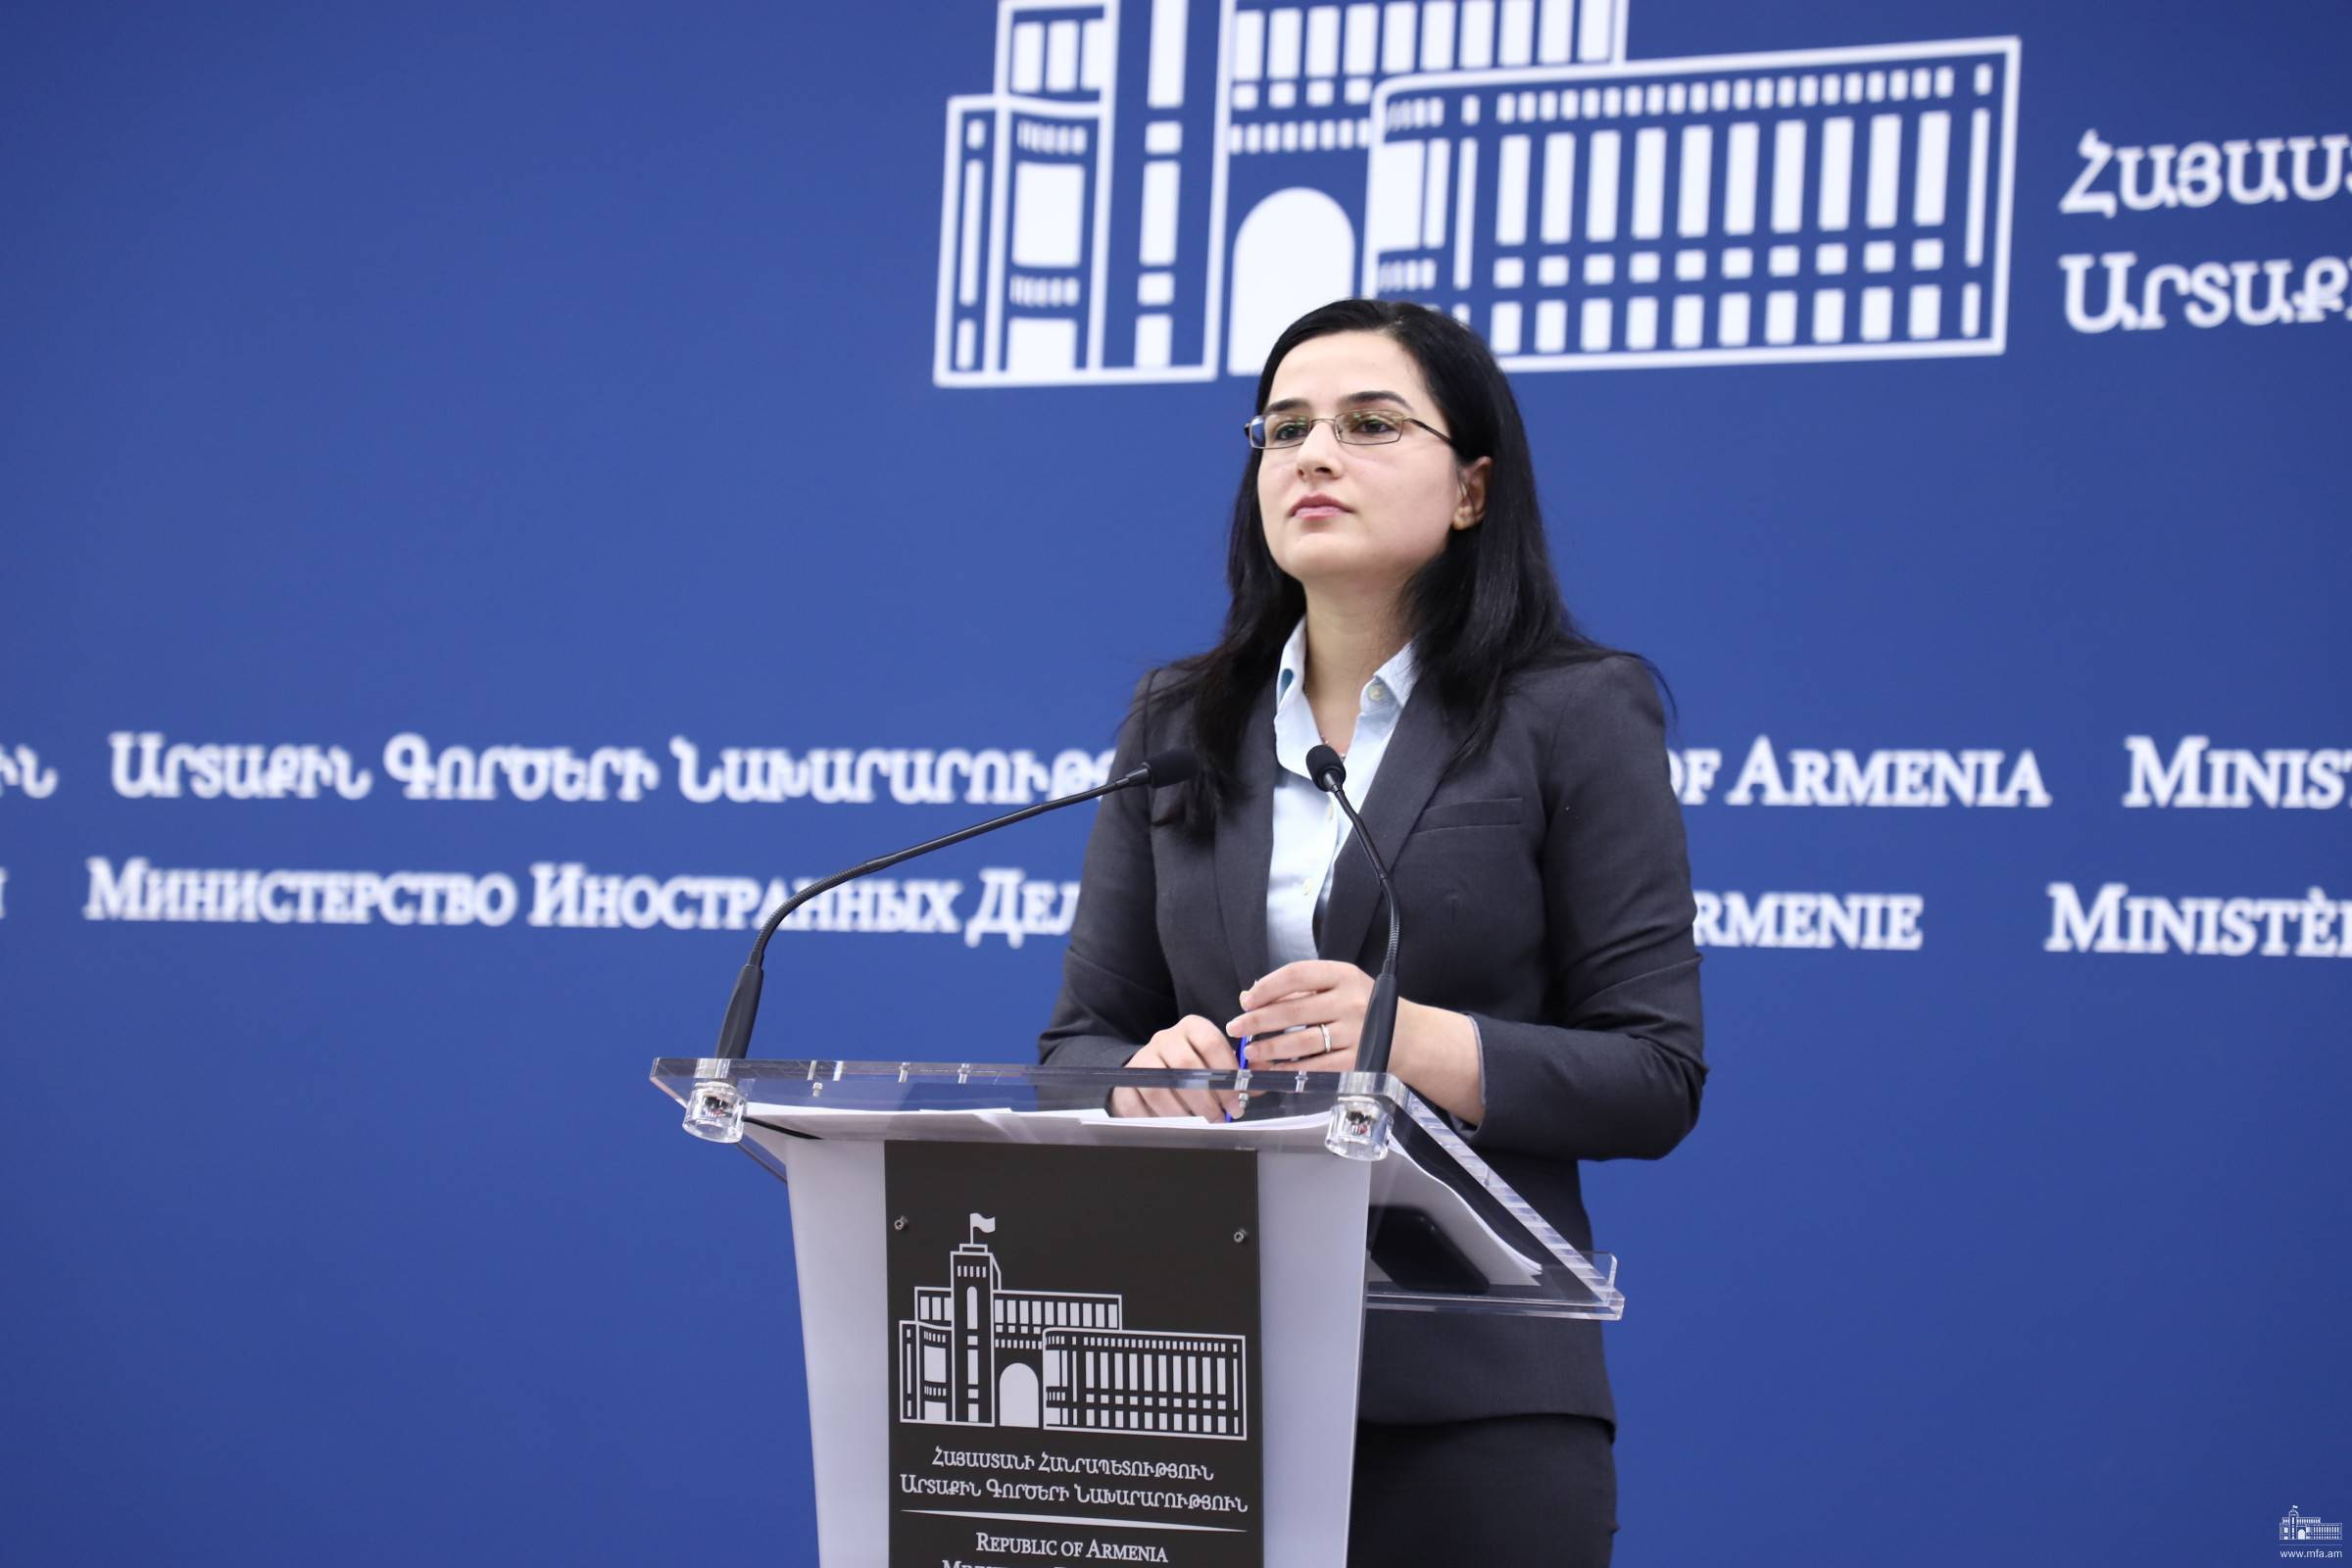 Response by the Spokesperson of the Foreign Ministry of Armenia to the question on the meeting of the representative of a non-governmental organization with ambassadors in Azerbaijan